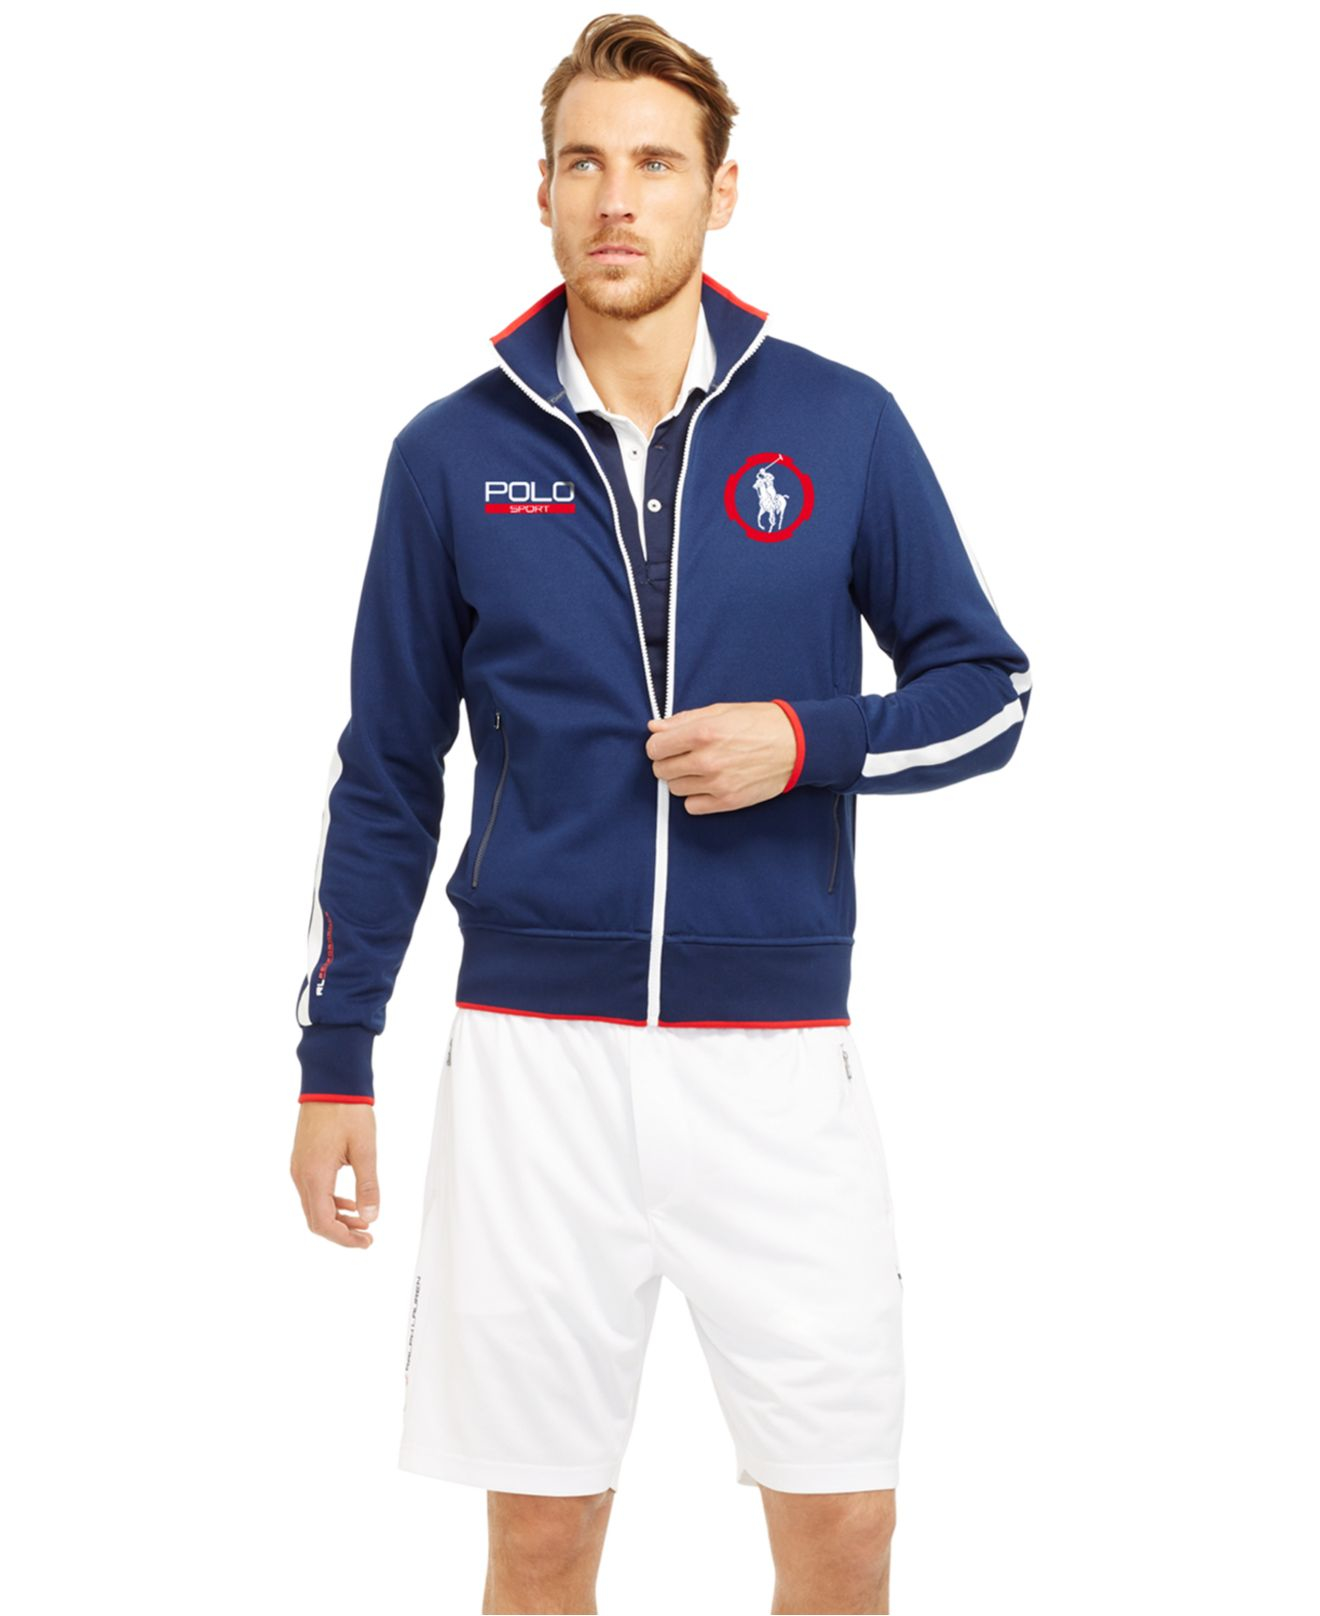 polo ralph lauren polo sport pique track jacket in blue. Black Bedroom Furniture Sets. Home Design Ideas